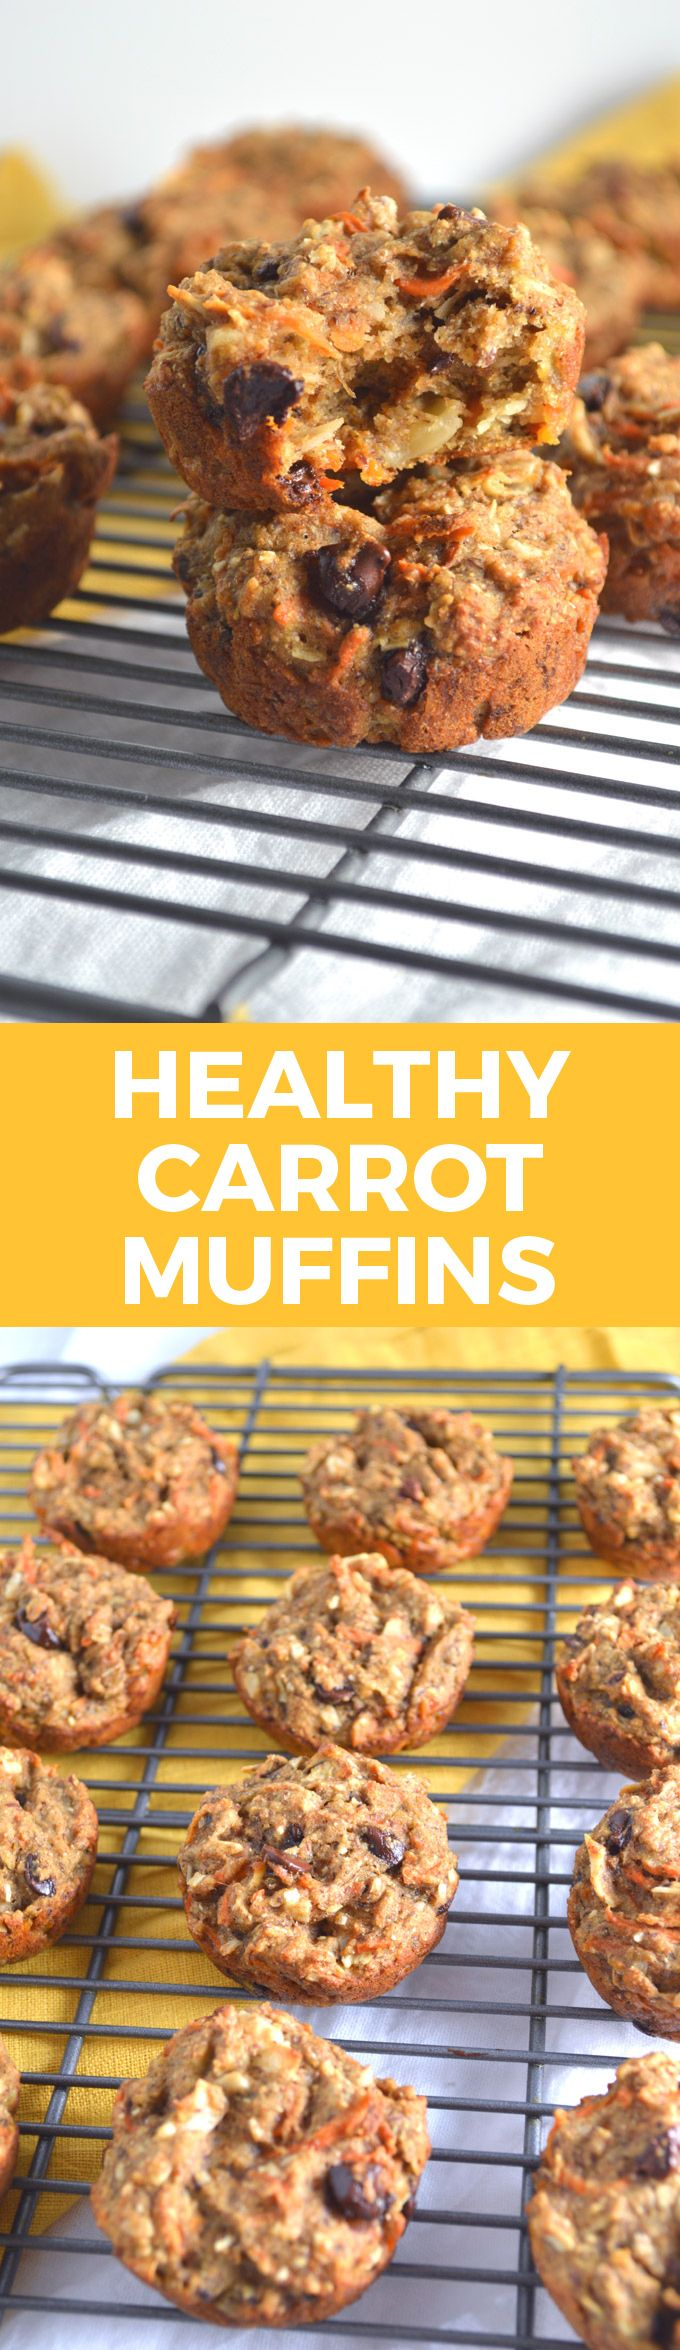 One Bowl Heathy Carrot Banana Muffins | a perfectly quick + delicious on-the-go breakfast or snack!